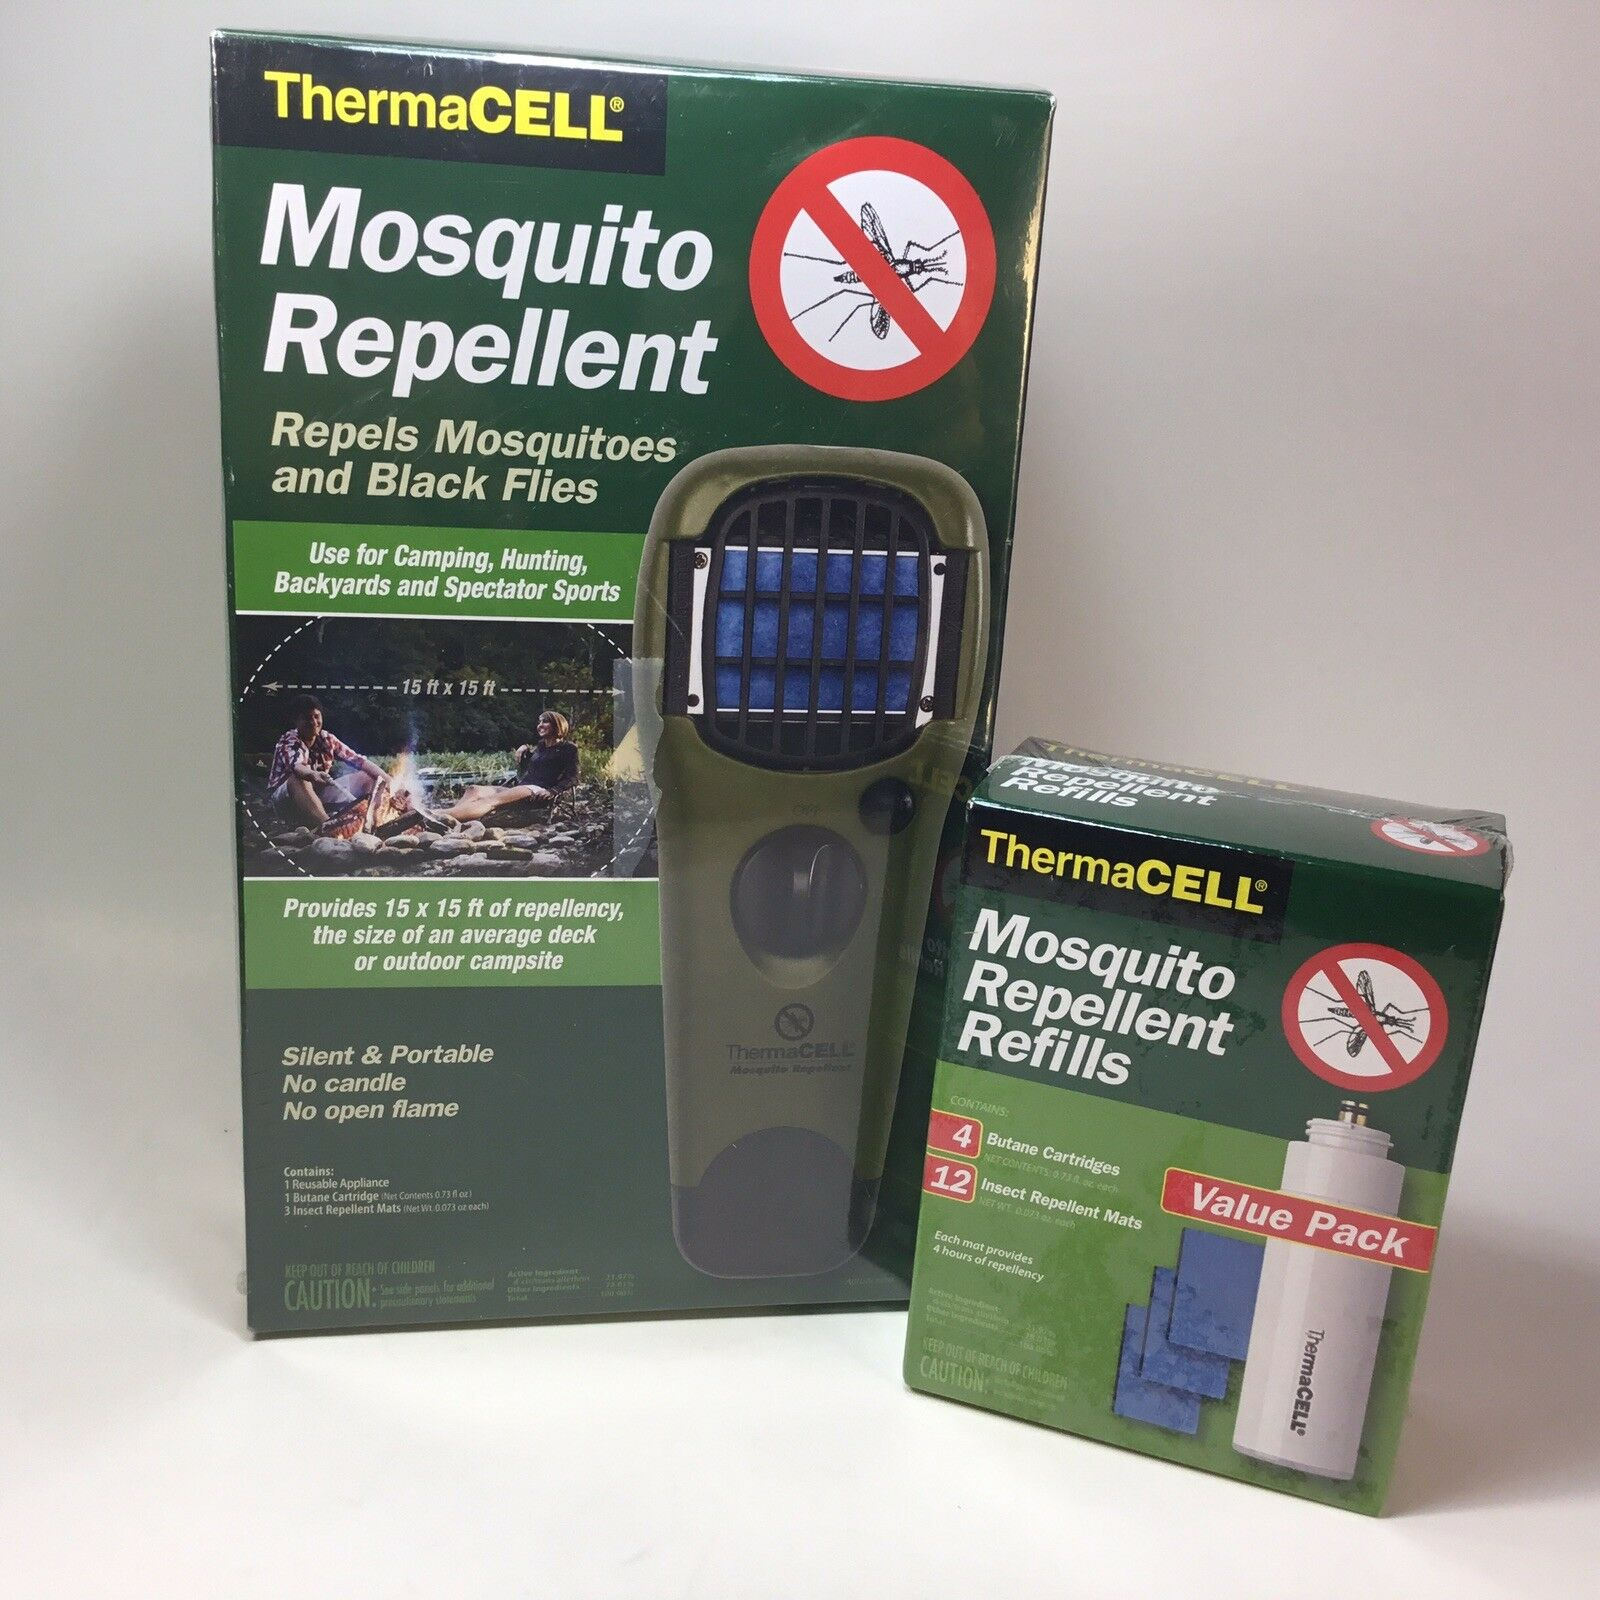 ThermaCELL Mosquito Repellent APPLIANCE WITH REFILLS Olive  MR-GJ